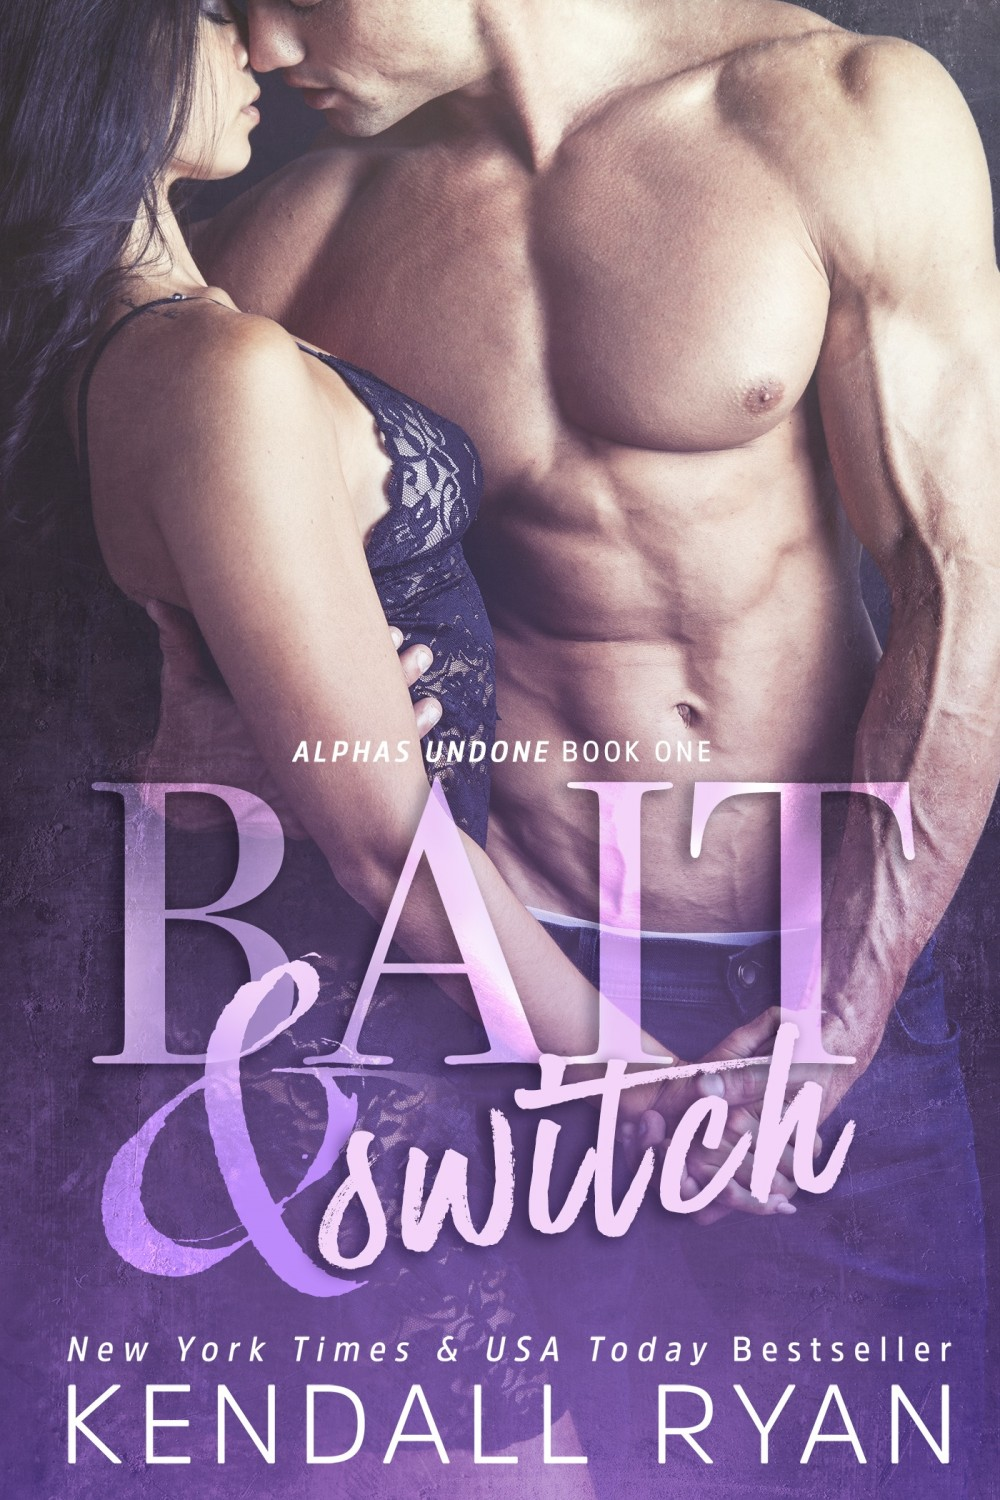 Bait-Switch-ebook-cover-Kendall-Ryan-1000x1500